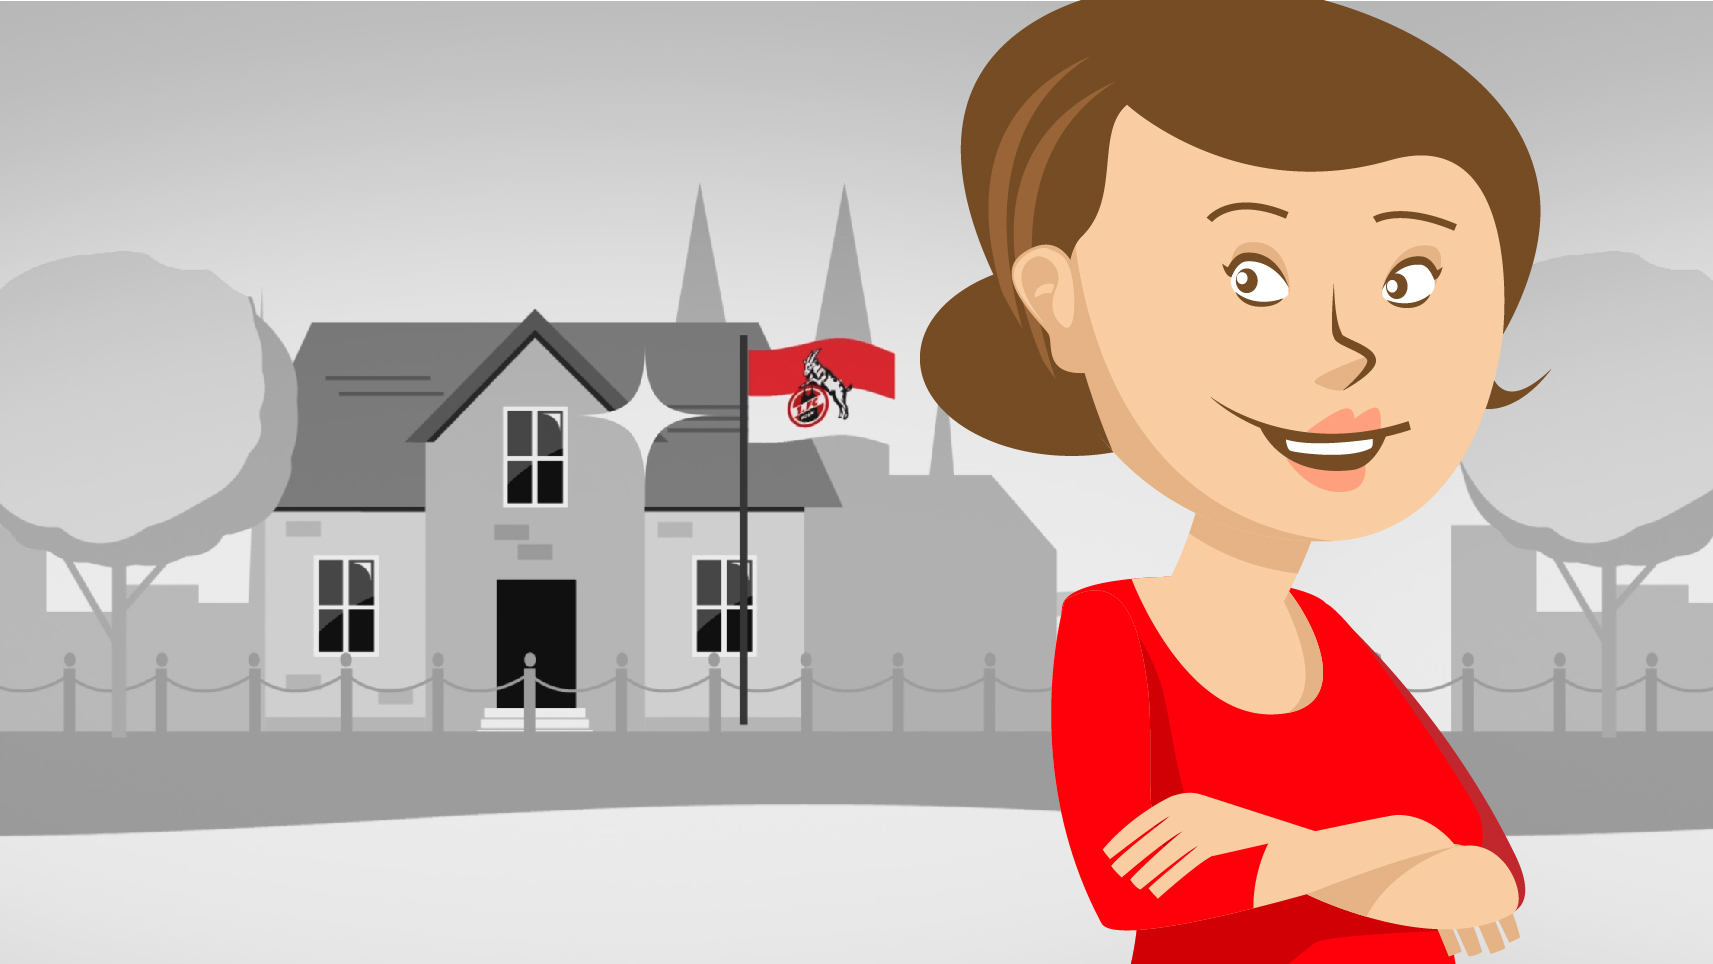 Illustration Mrs. Schmitz is in front of her House and in the background is an 1FC Cologne Flag